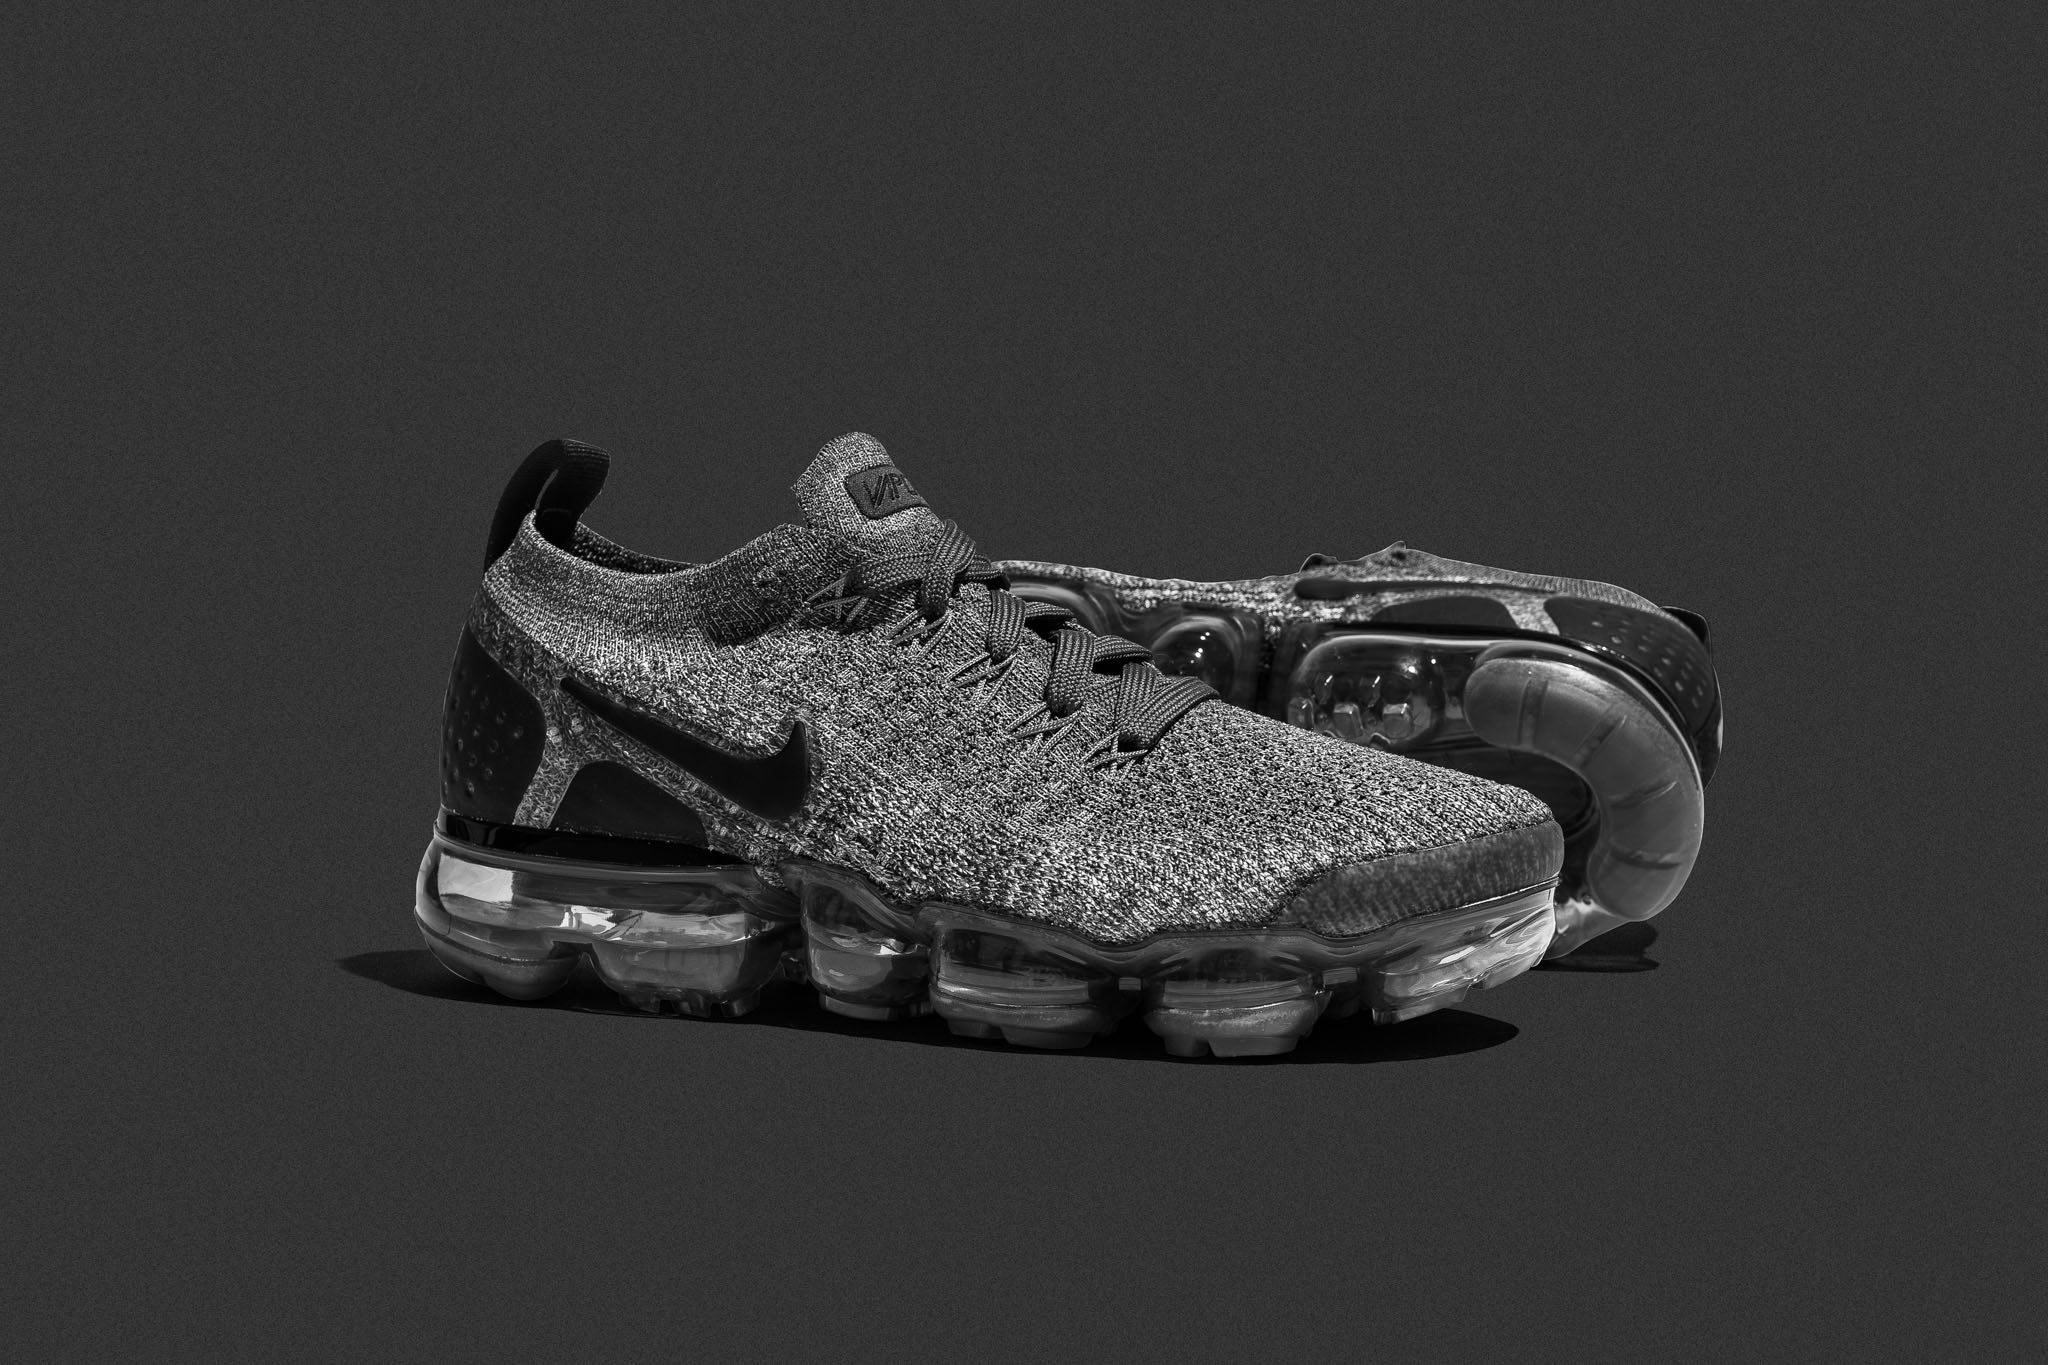 1575ca3487ab1 The latest Women s Air Vapormax Flyknit 2 adds simple and clean dark   wolf  grey uppers to the silhouette. The Air VaporMax Flyknit 2 is made with the  ...